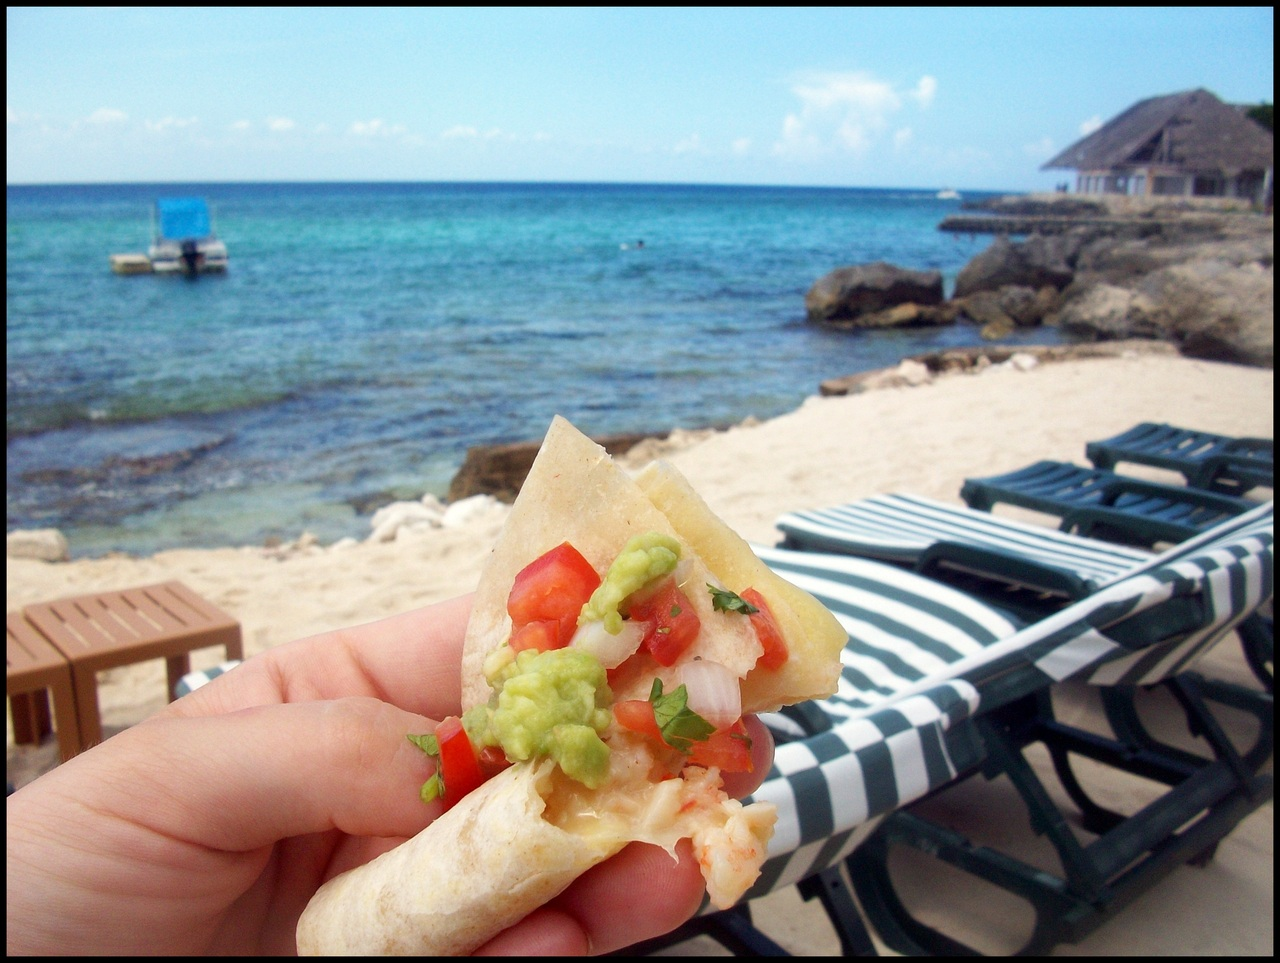 thebestbite: Shrimp Quesadilla with Guac and Pico de Gallo. Playa Azul, Cozumel Mexico Jessica sent this beautiful bite many months ago. I think it's appropriate to share it now that the sun is out. Thanks again to Best Bite All-Star Jessica for sharing.  I have a few bites in storage but please startsubmitting your Best Bites to thebestbite@gmail.com